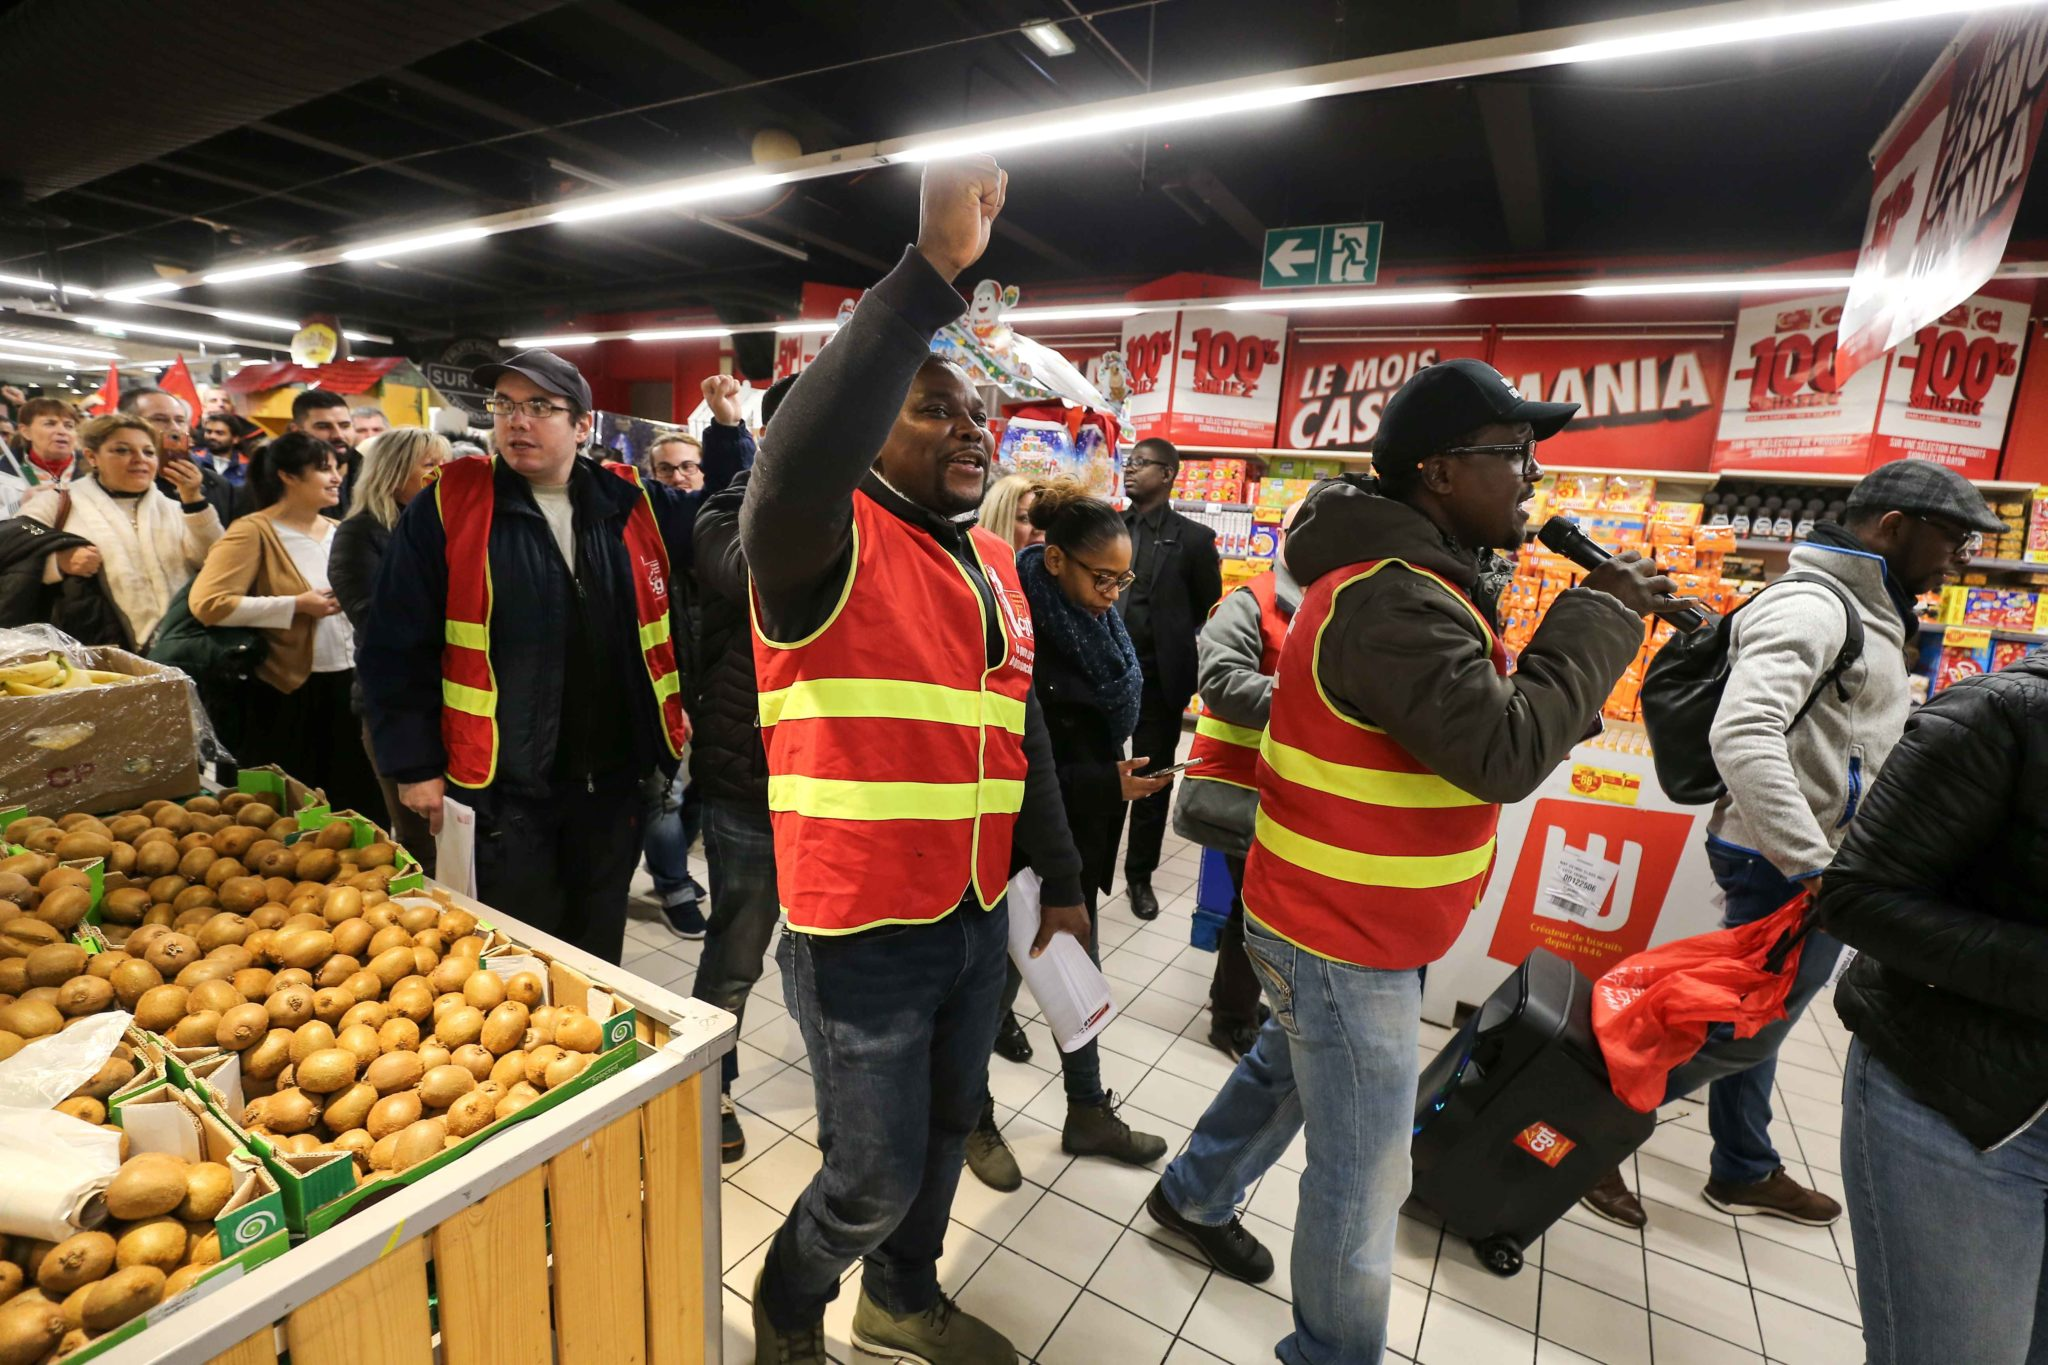 Des membres de la CGT marchent dans le grand magasin Casino. © Michel Stoupak. Mar 26.11.2019, 10:46:43.